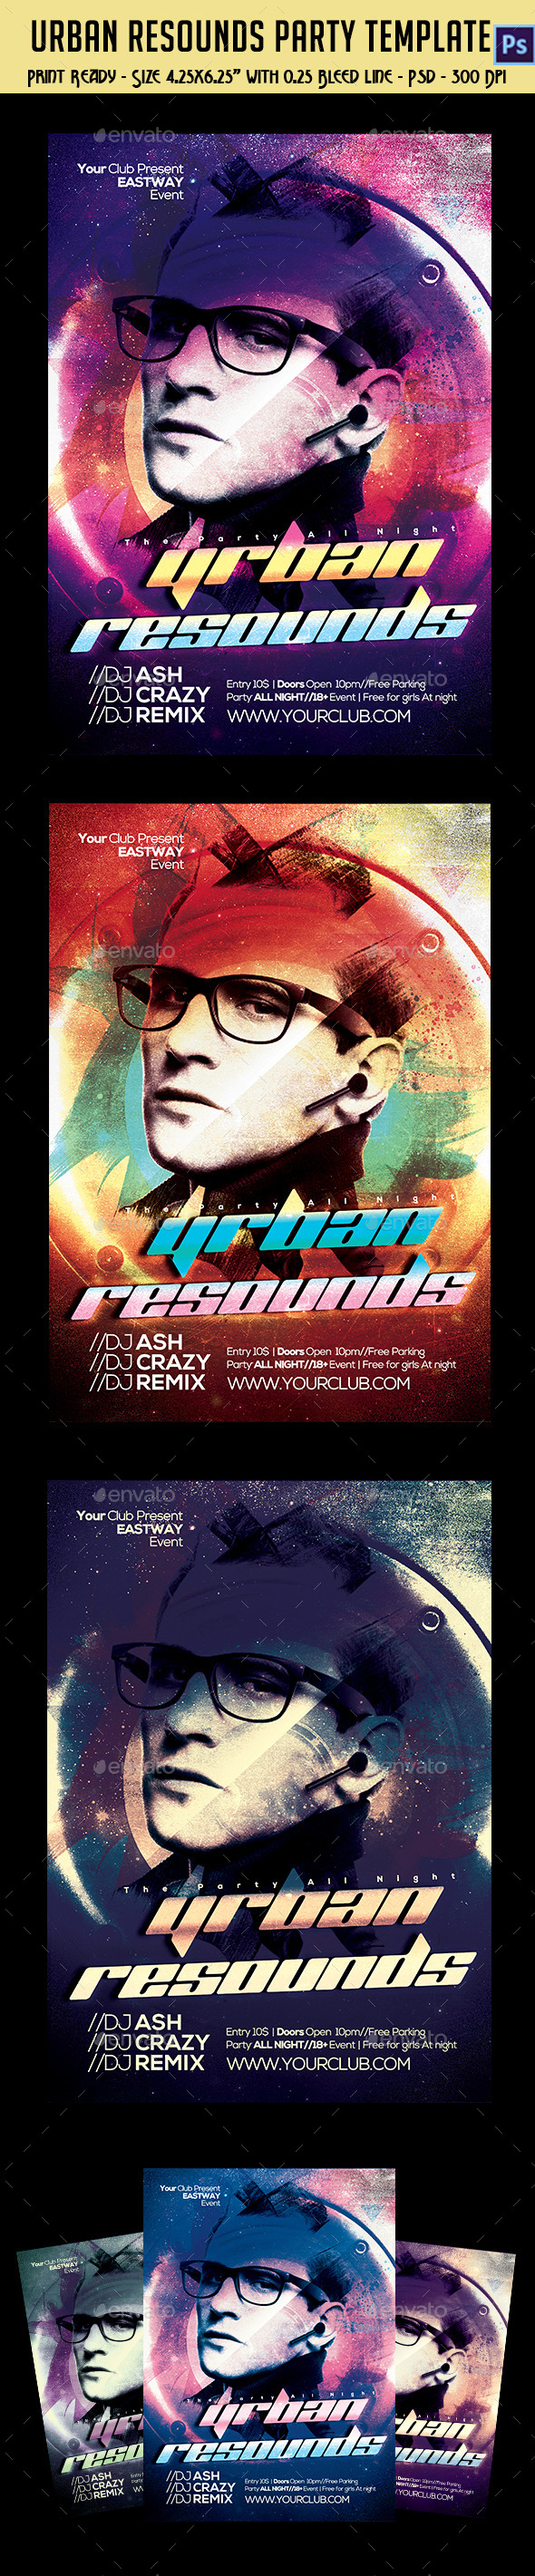 Urban resound Party Flyer - Clubs & Parties Events